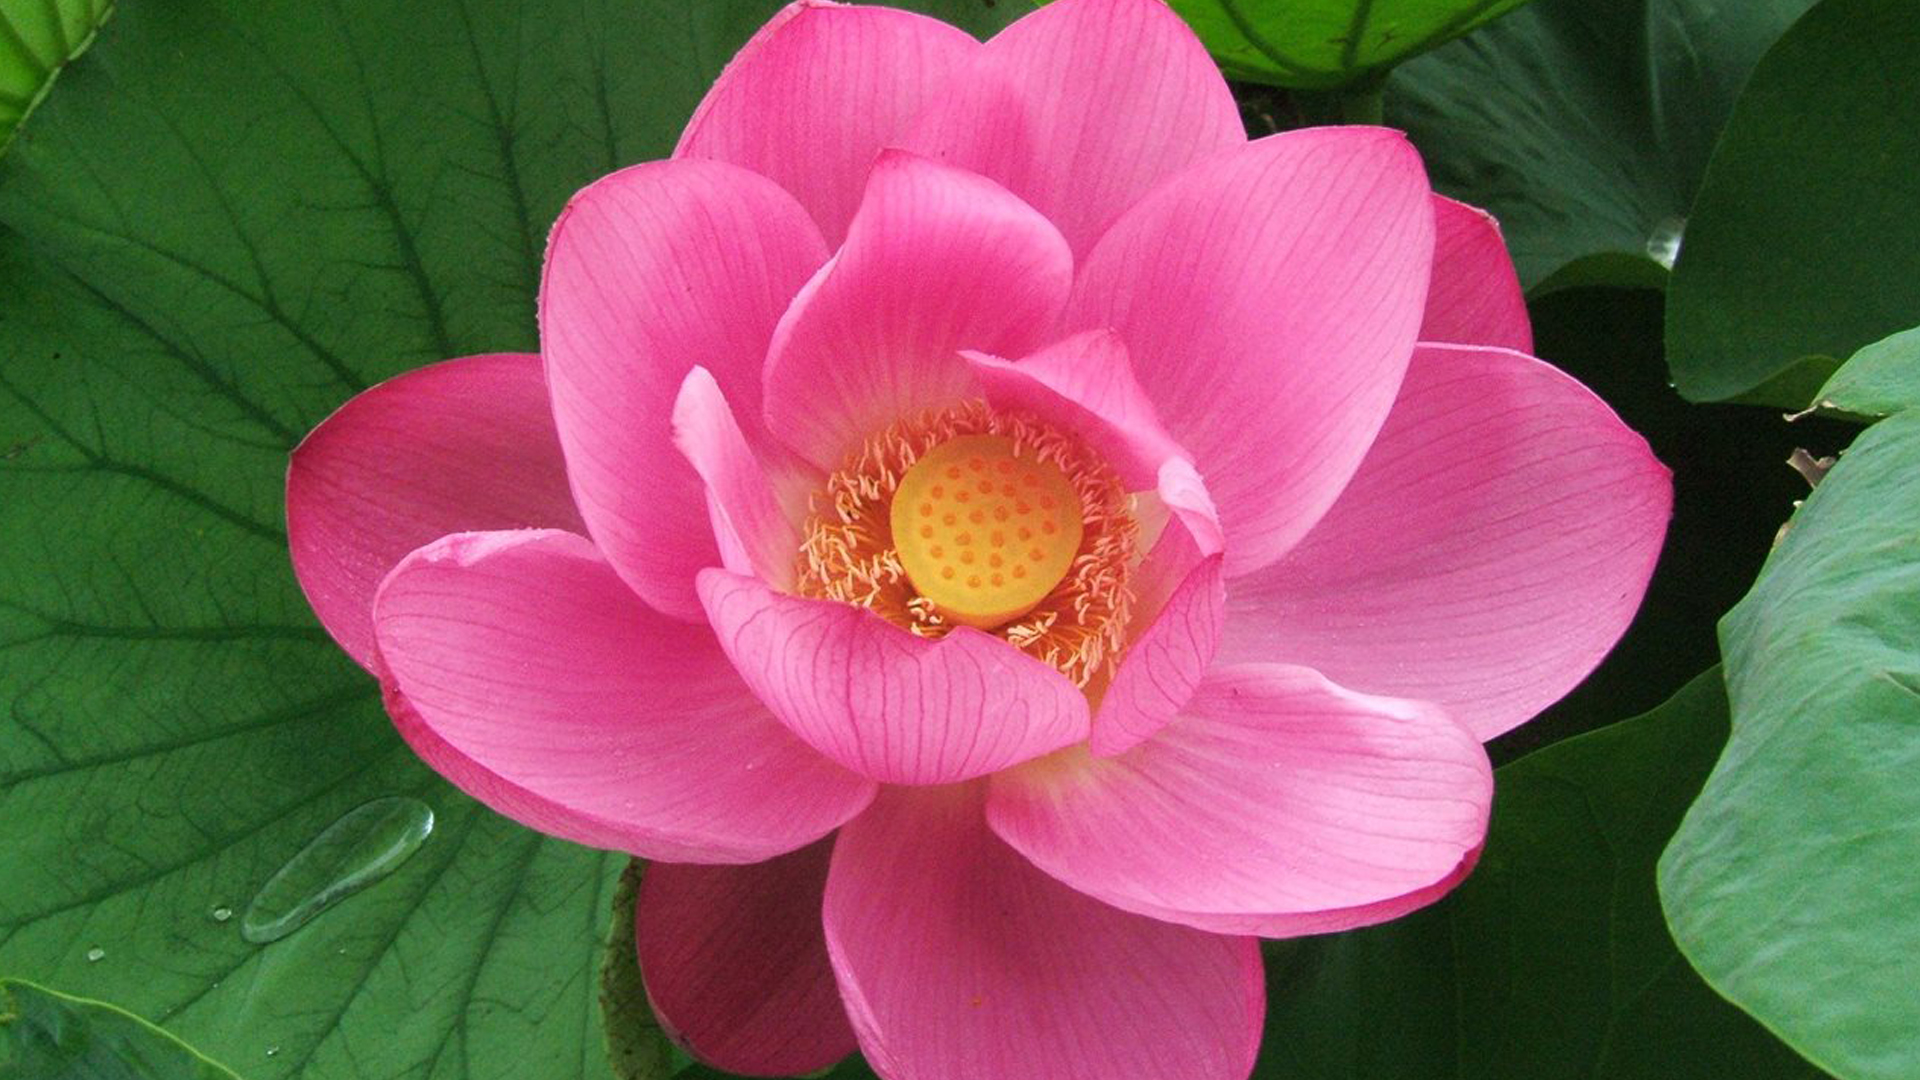 HD Close Up Picture Of Pink Lotus Flower For Desktop